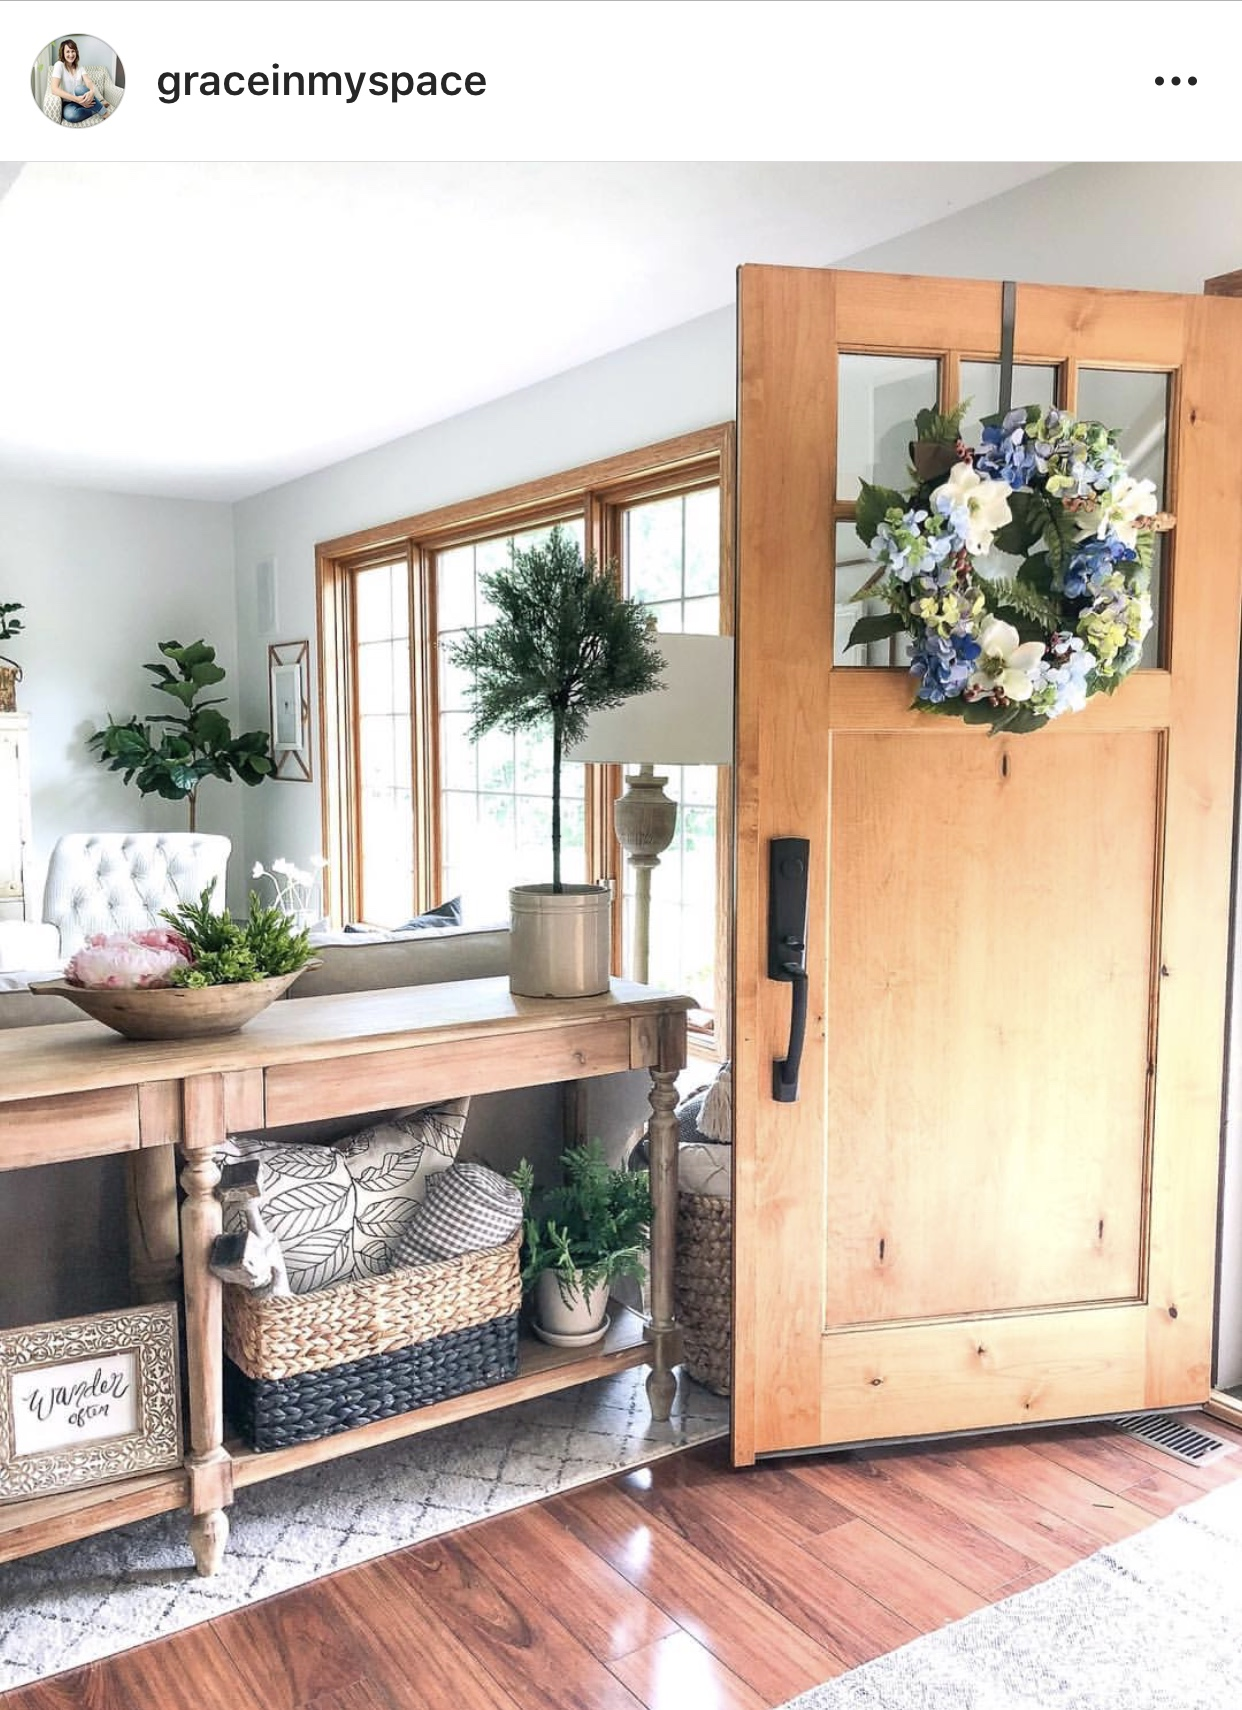 Top 5 Favorite Farmhouse Instagram Accounts To Follow